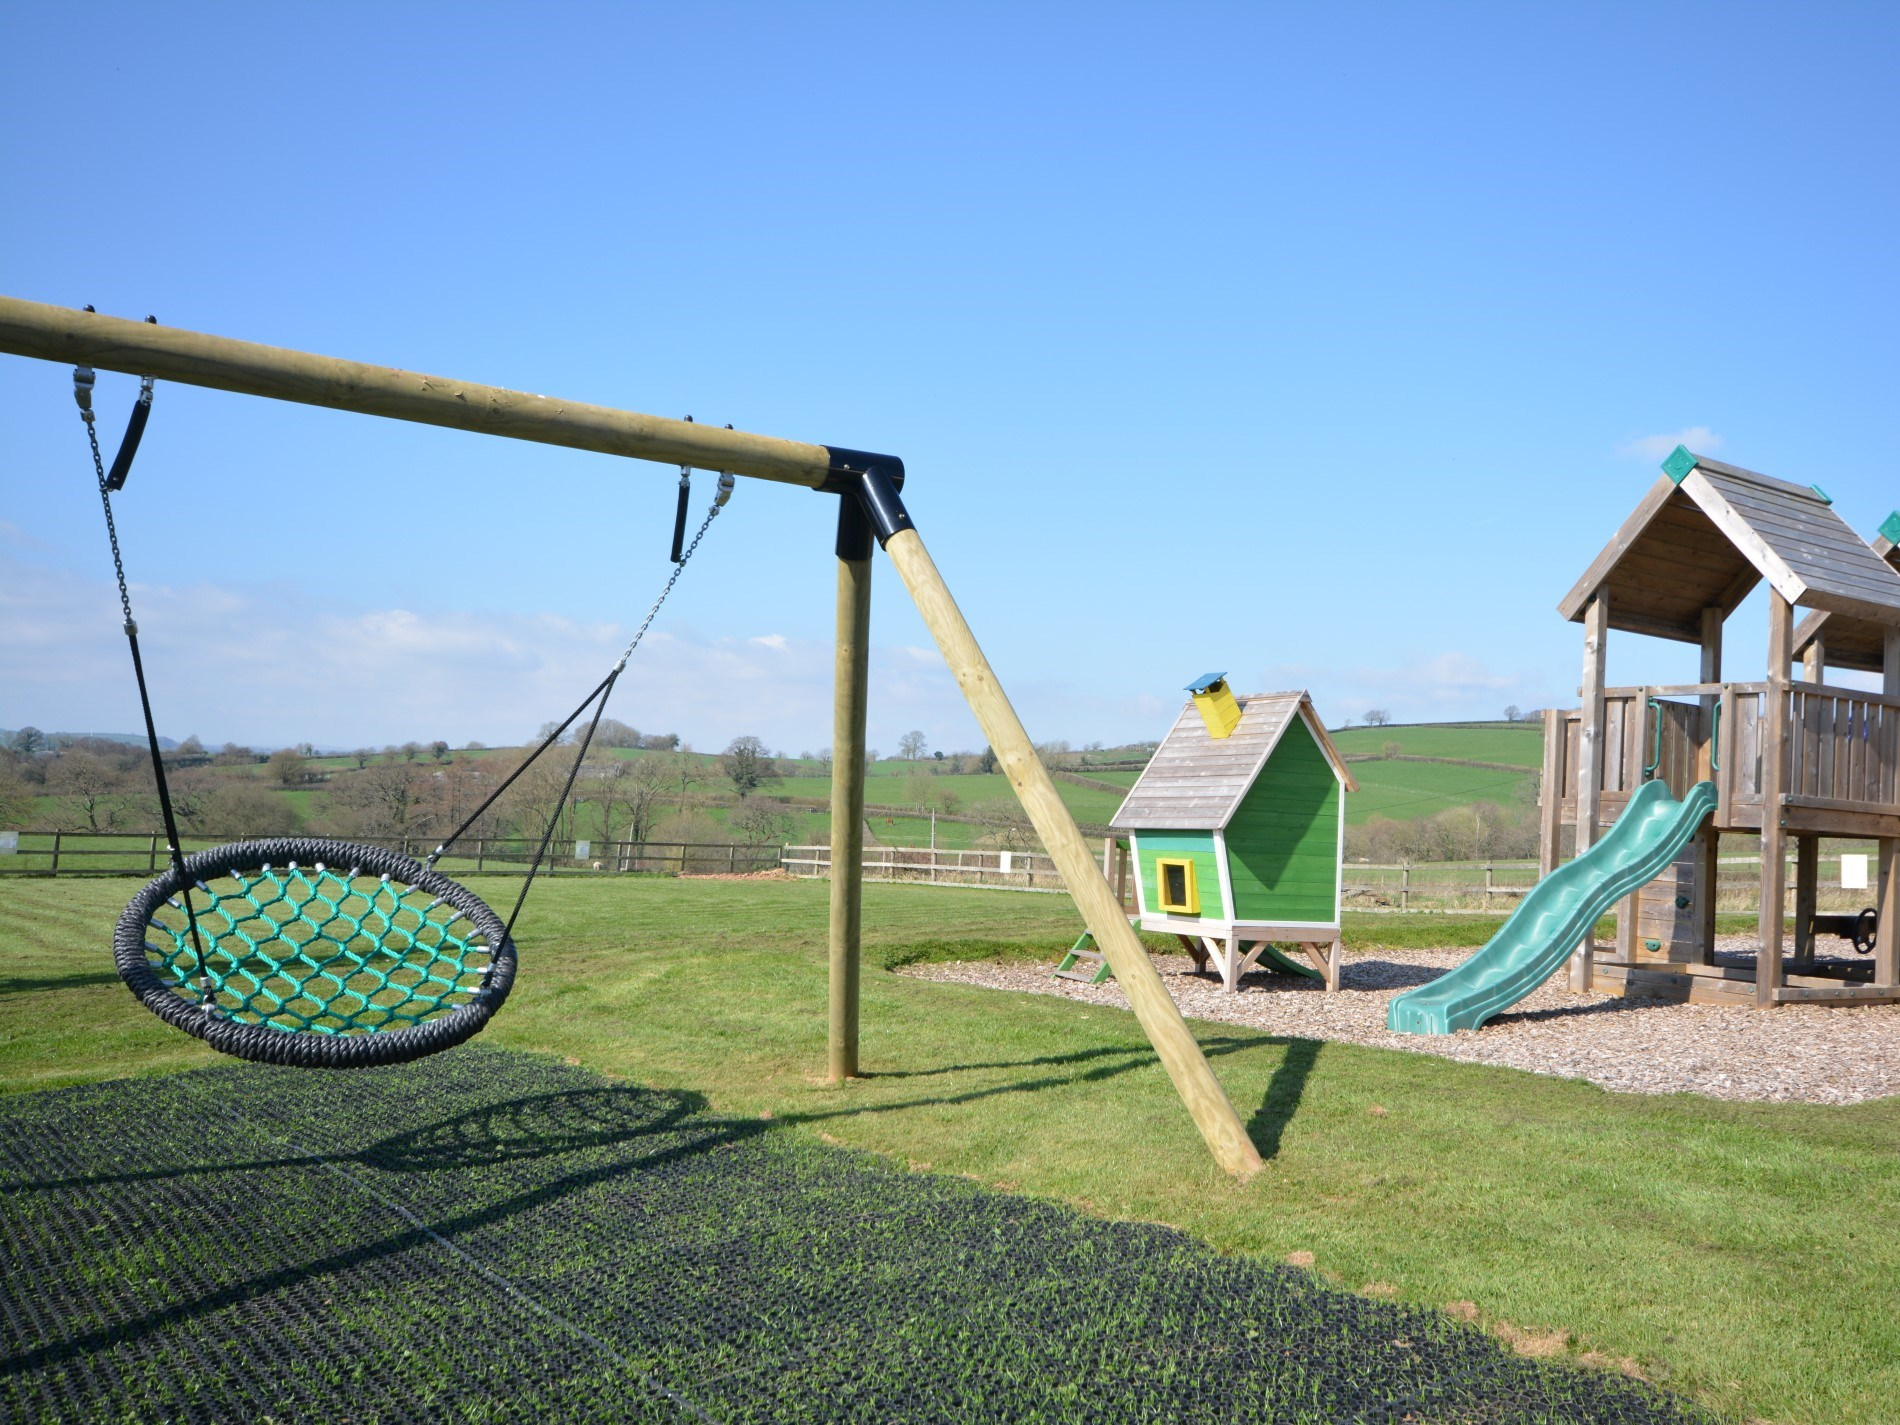 Communal play area